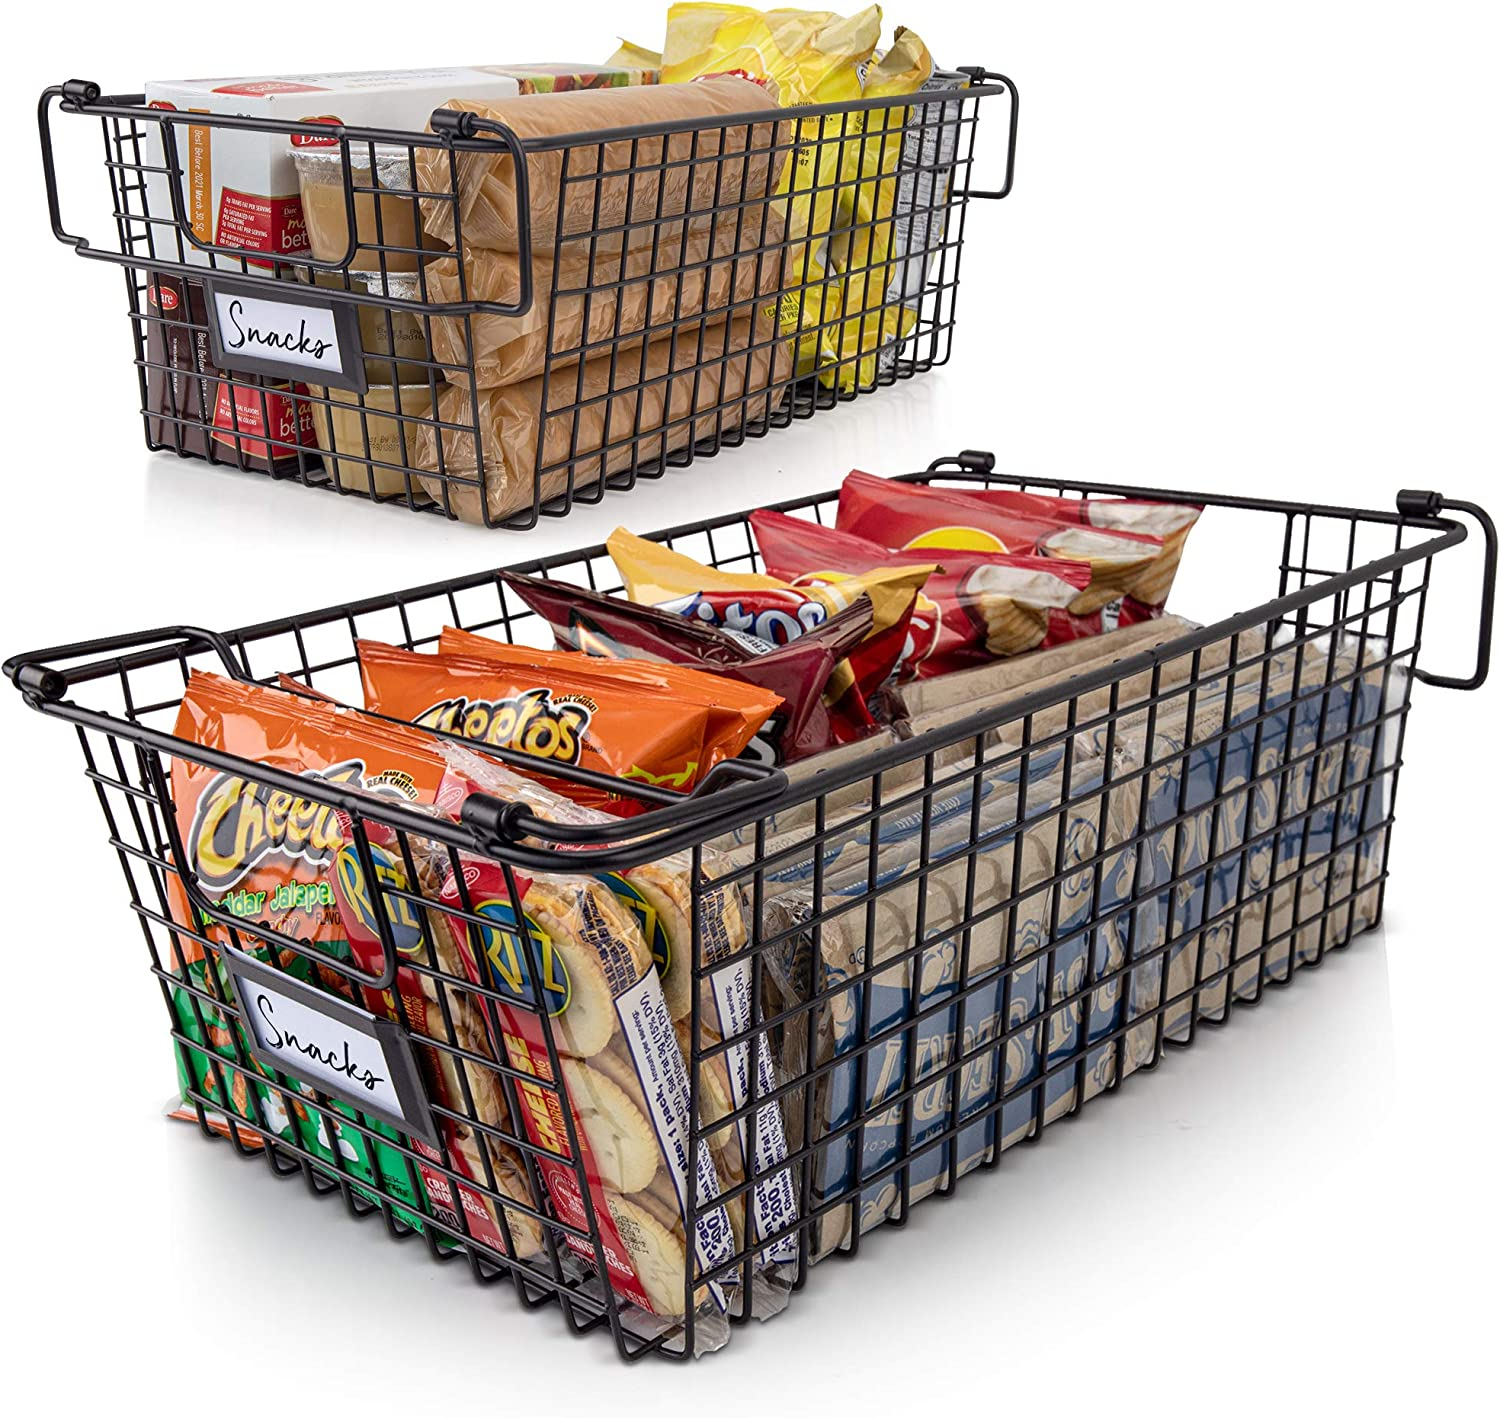 Gorgeous Stackable XL Wire Baskets For Pantry Storage and Organization - Set of 2 Pantry Storage Bins With Handles - Large Metal Food Baskets Keep Your Pantry Organized